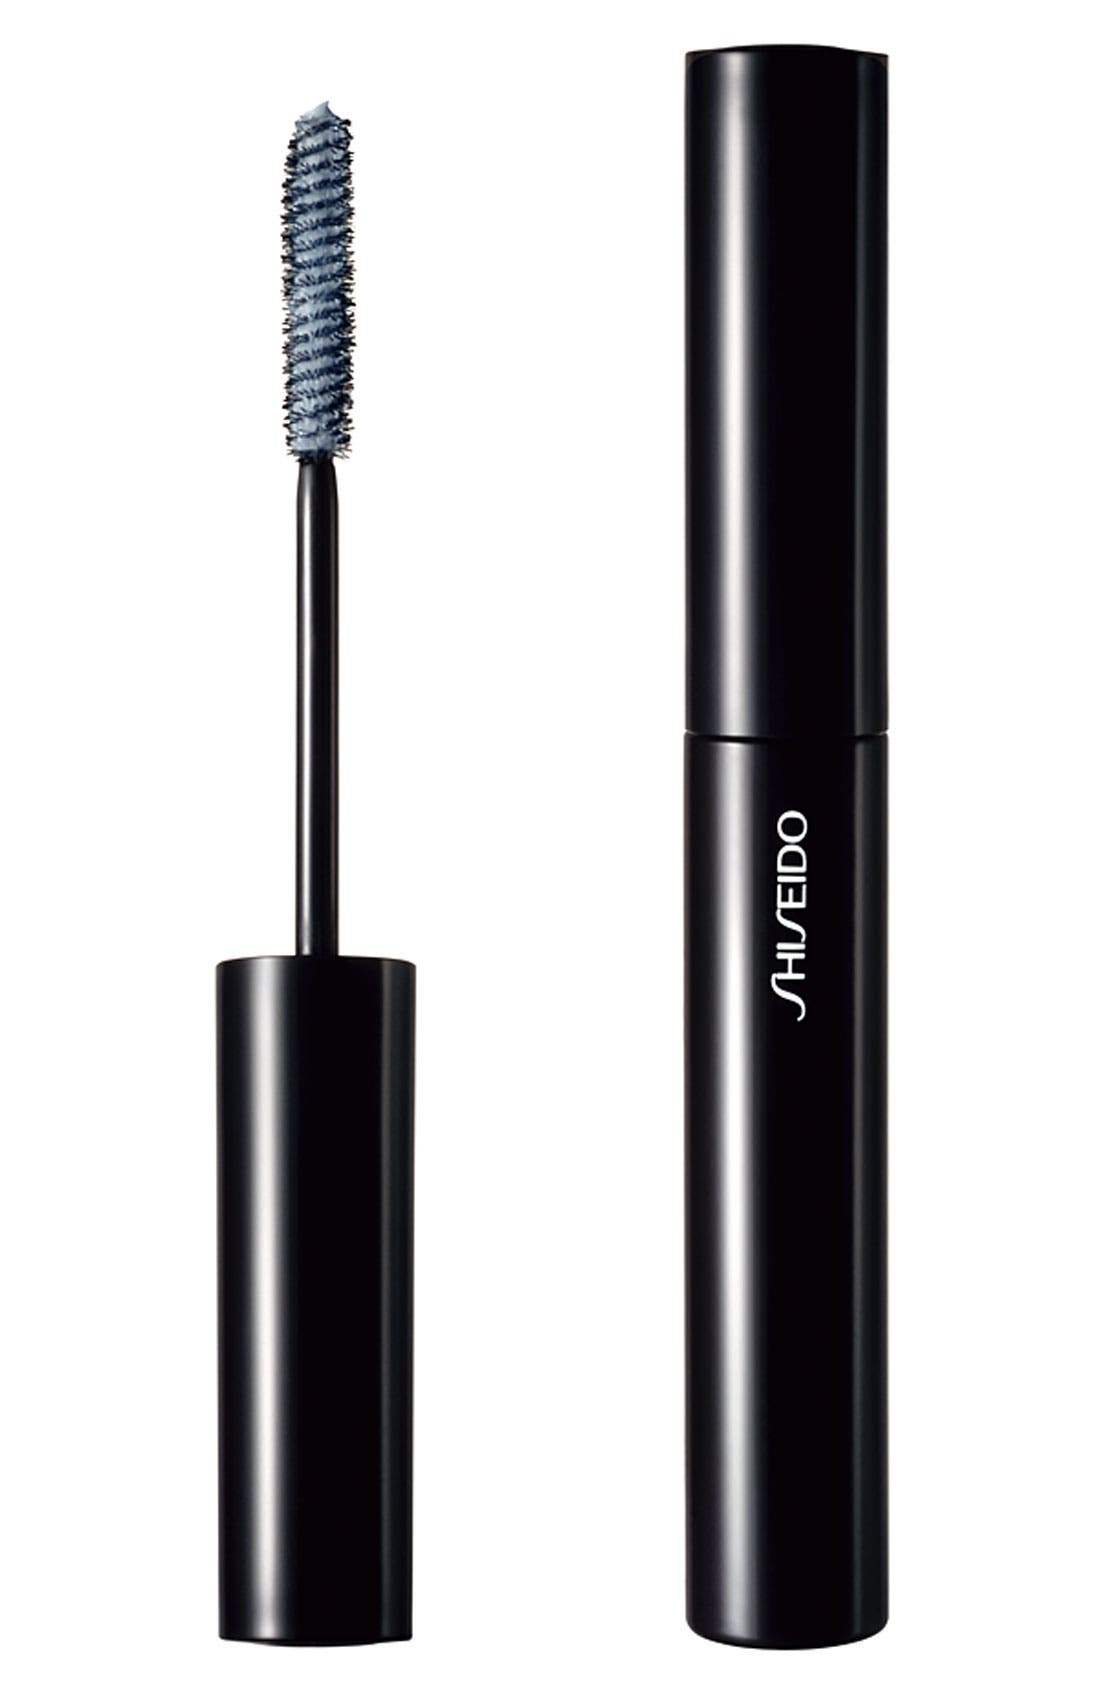 Shiseido 'The Makeup' Nourishing Mascara Base